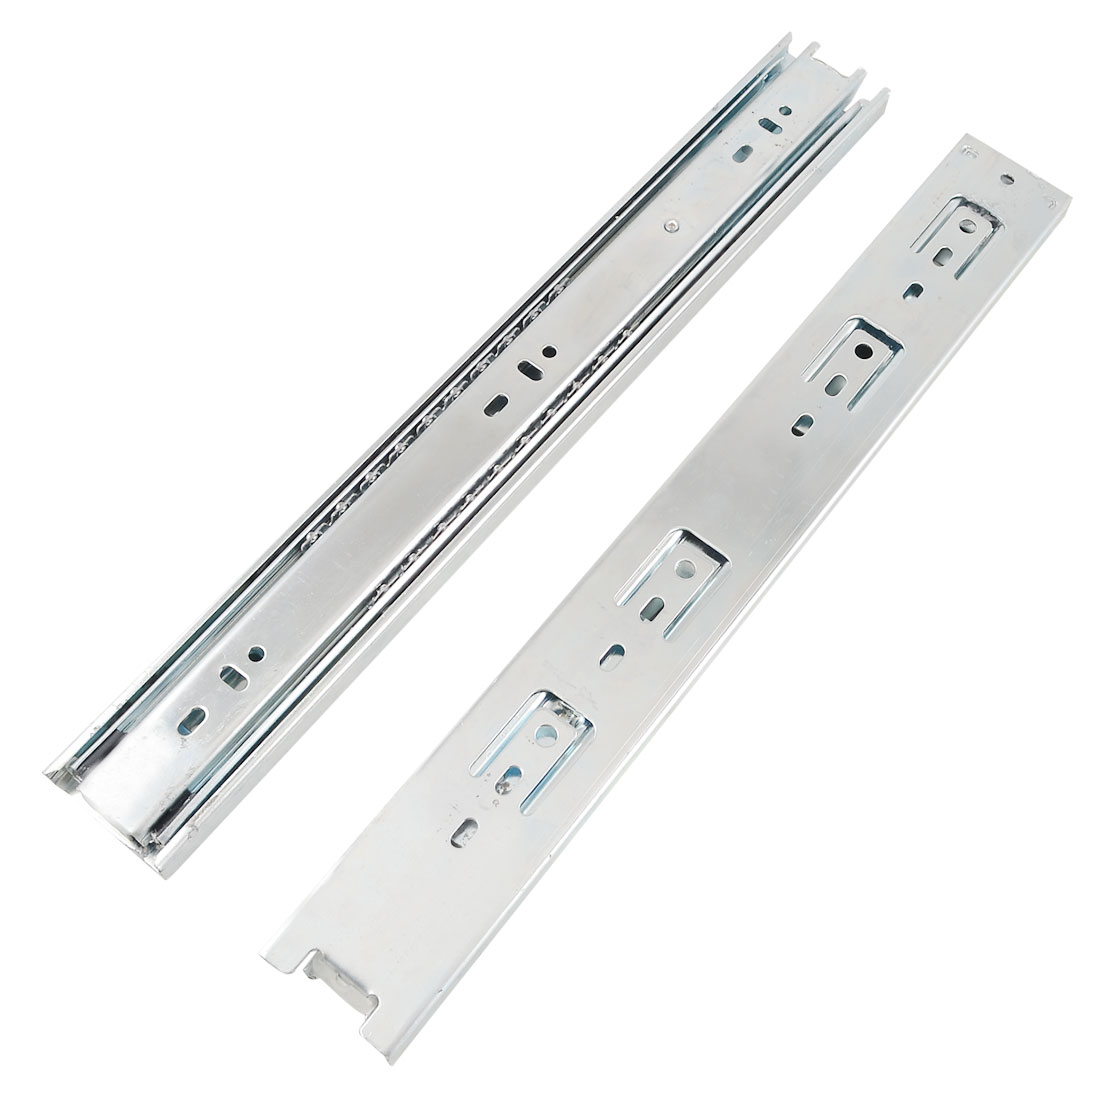 "2 Pcs 14"" Ball Bearing Telescopic Drawer Slides Sliding Rails"